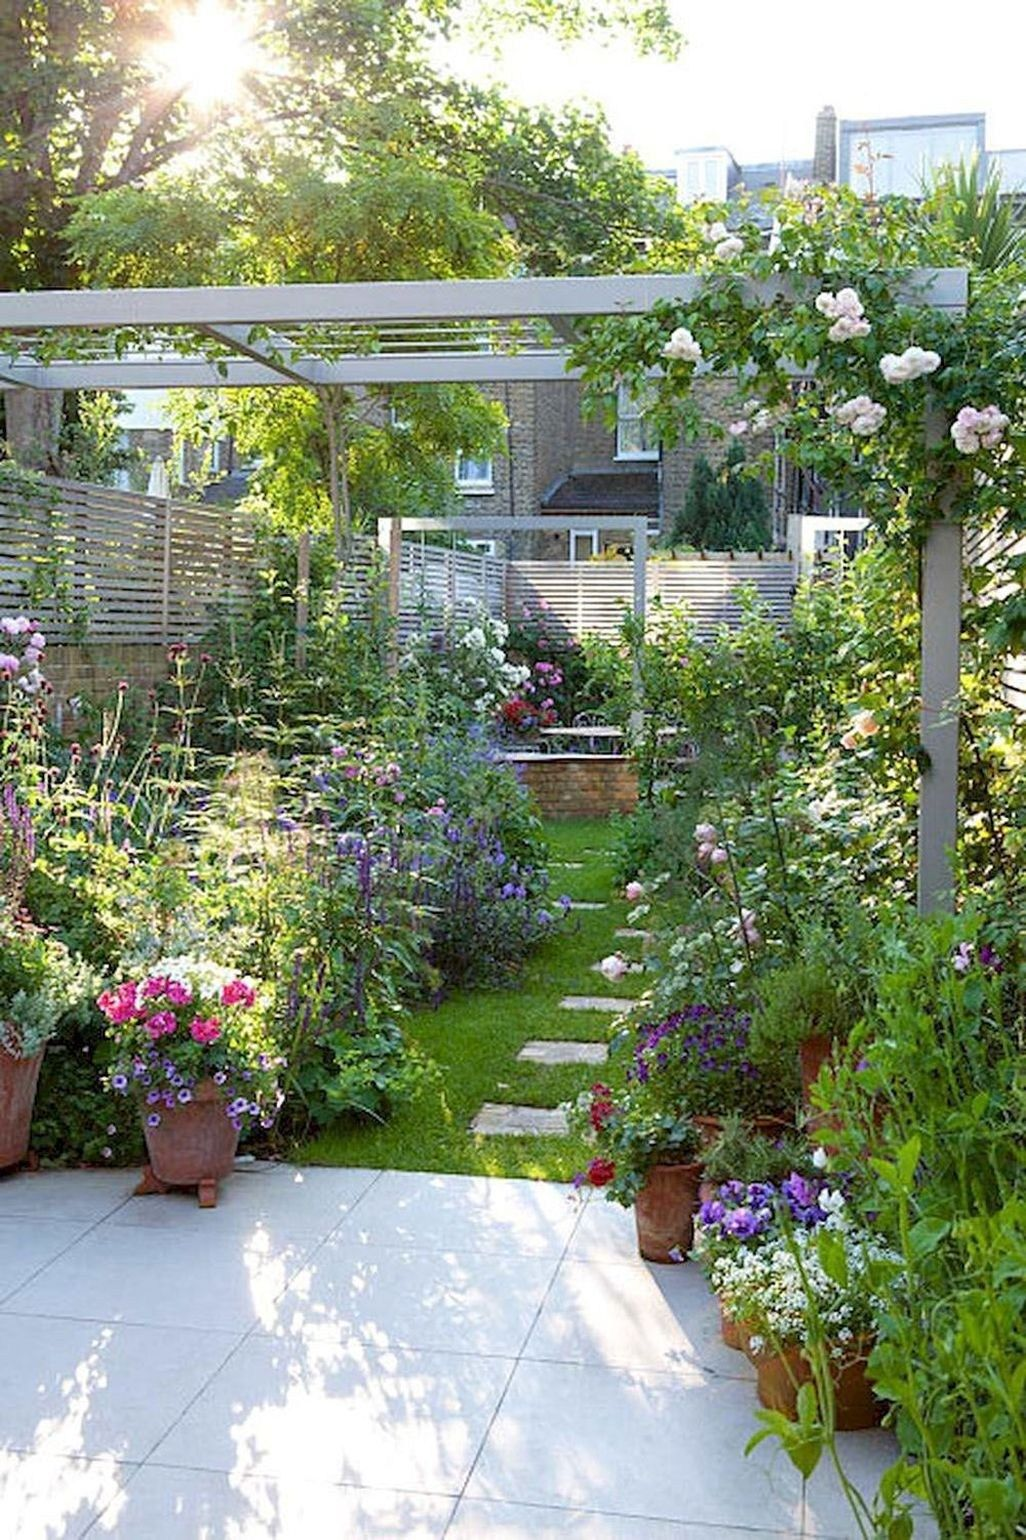 Amazing Gardening Balcony Low Budget (With images) | Small ...